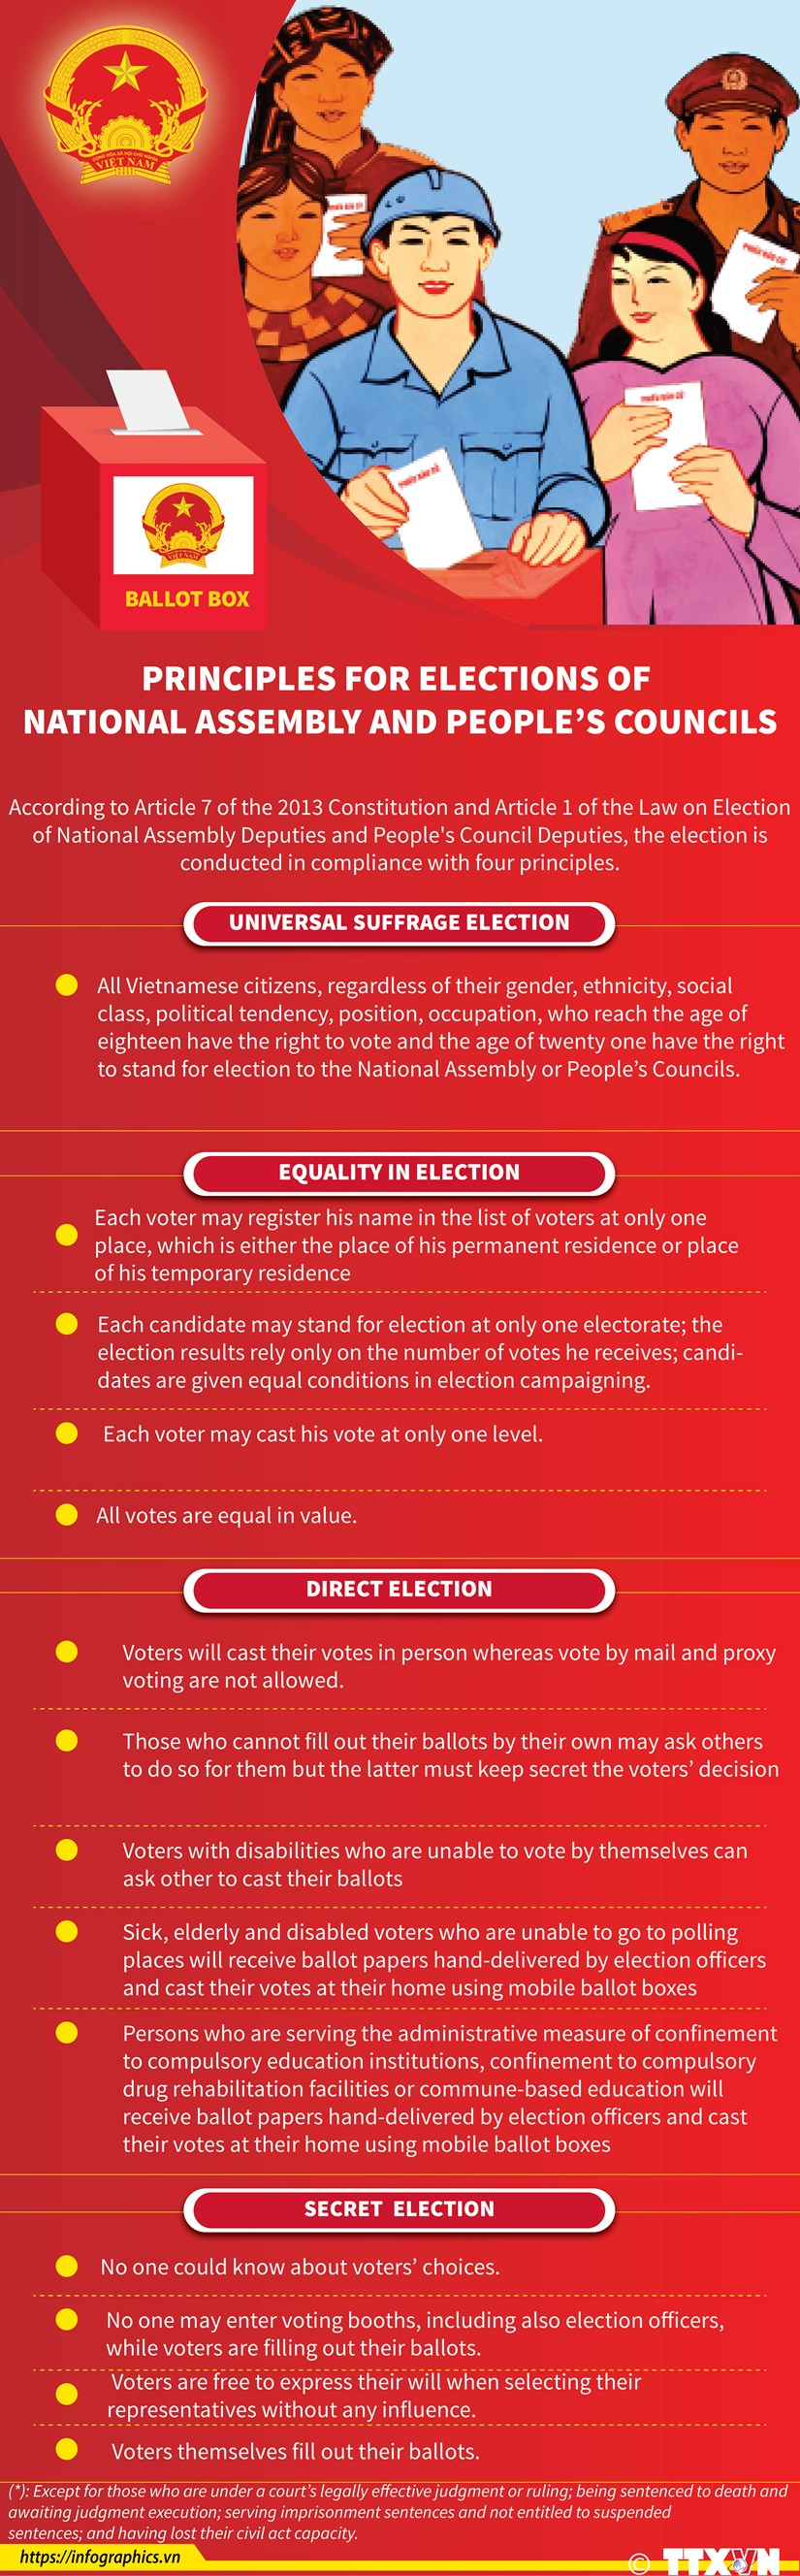 Principles for elections of deputies to National Assembly and People's Councils hinh anh 1